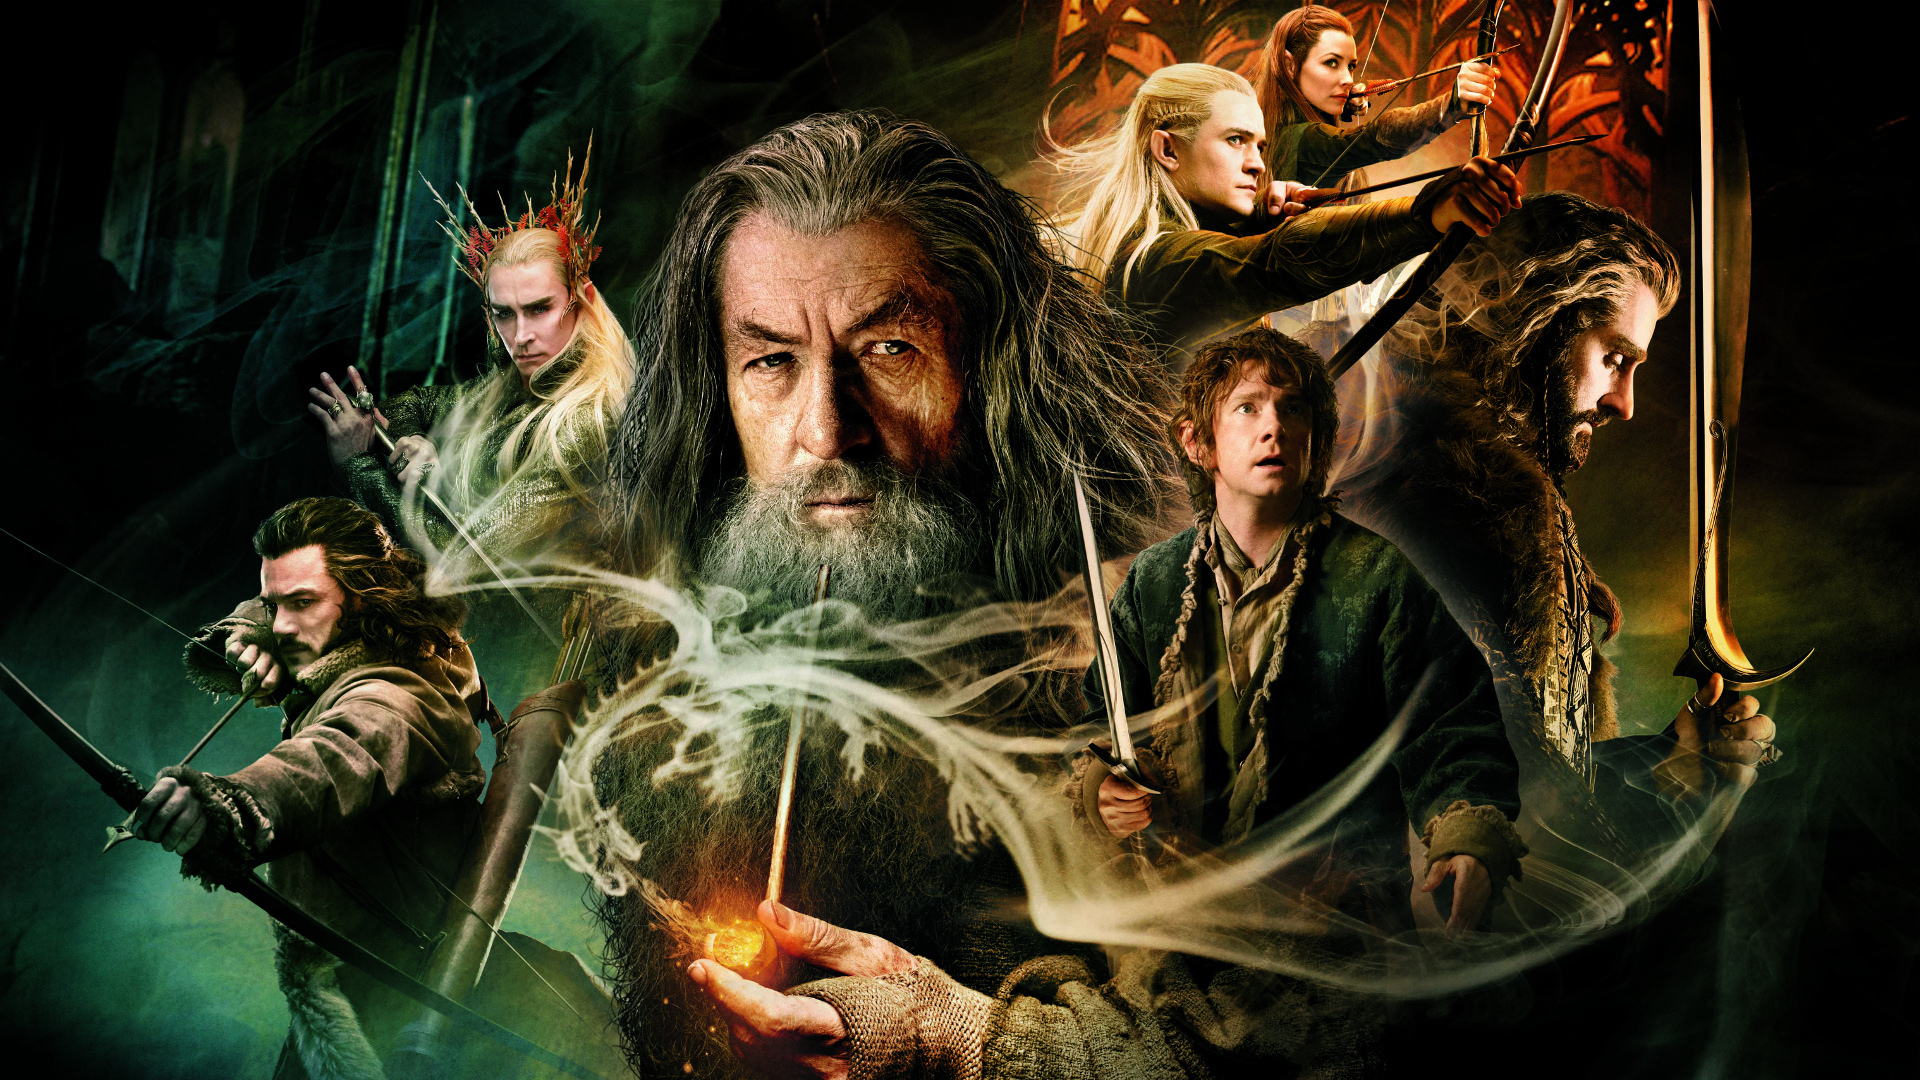 The Hobbit The Desolation of Smaug Wallpaper   Wallpaper High 1920x1080